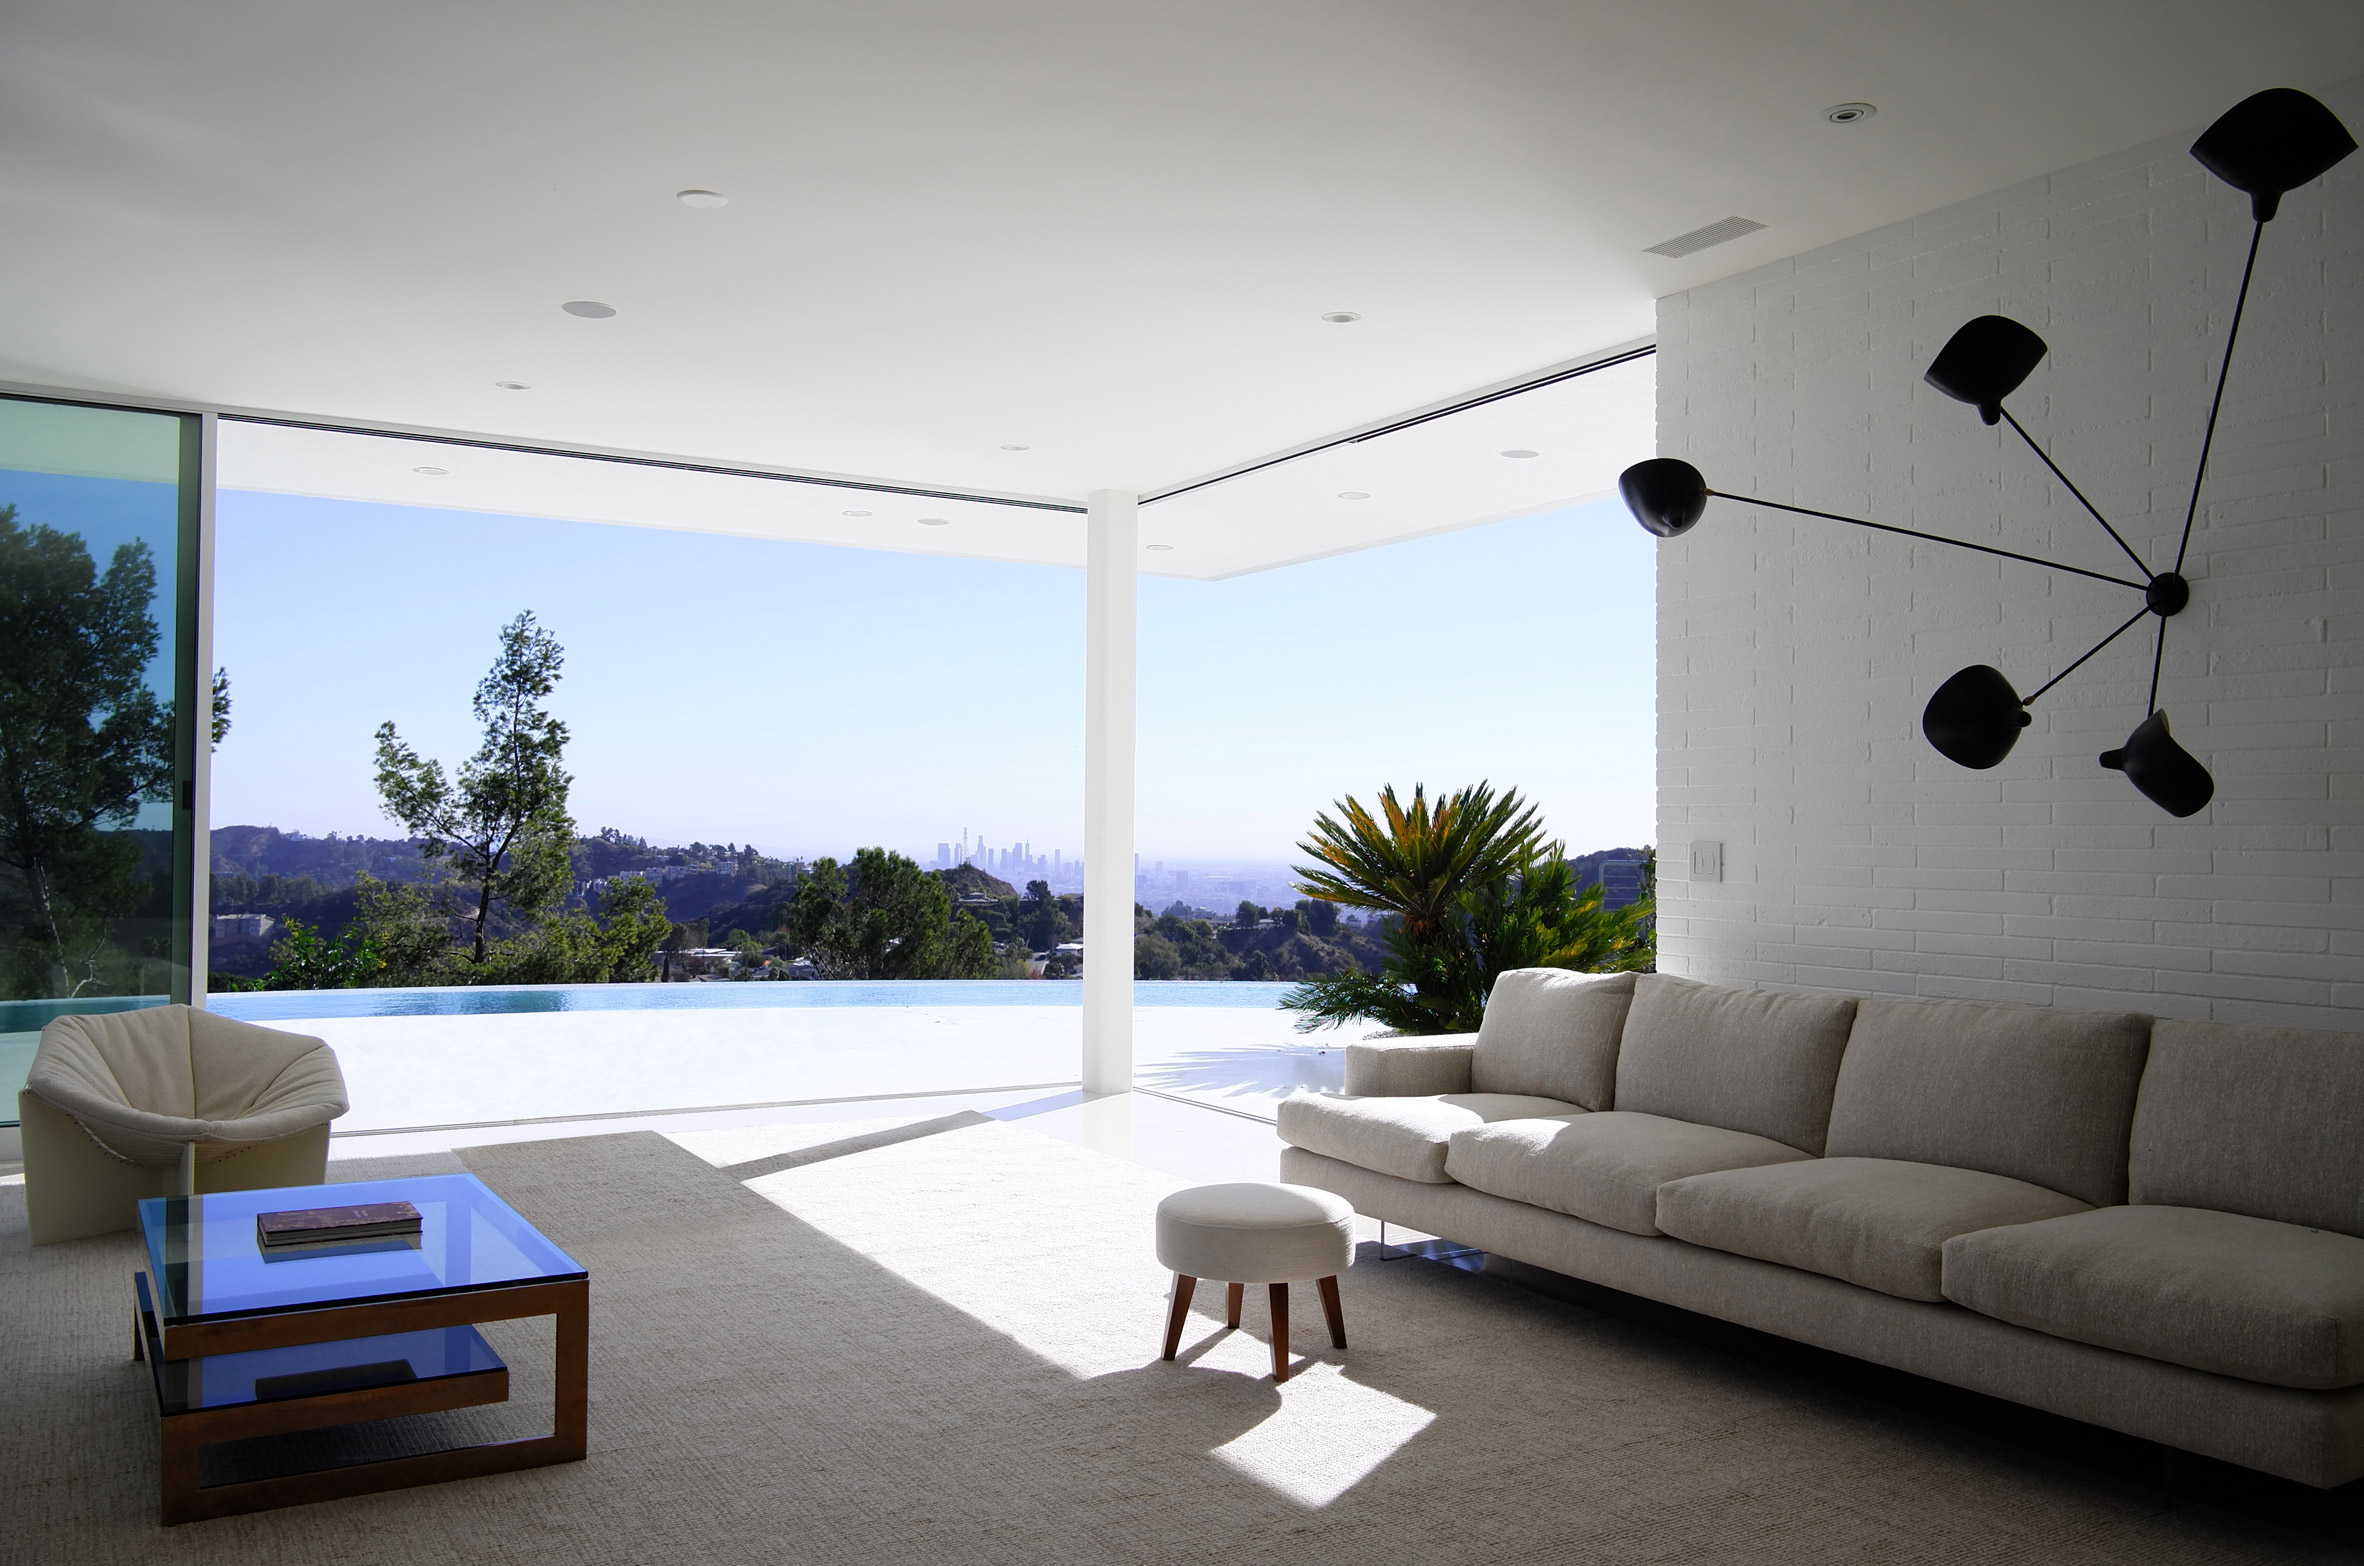 Residence overlooking Mulholland Drive by Heusch Inc.